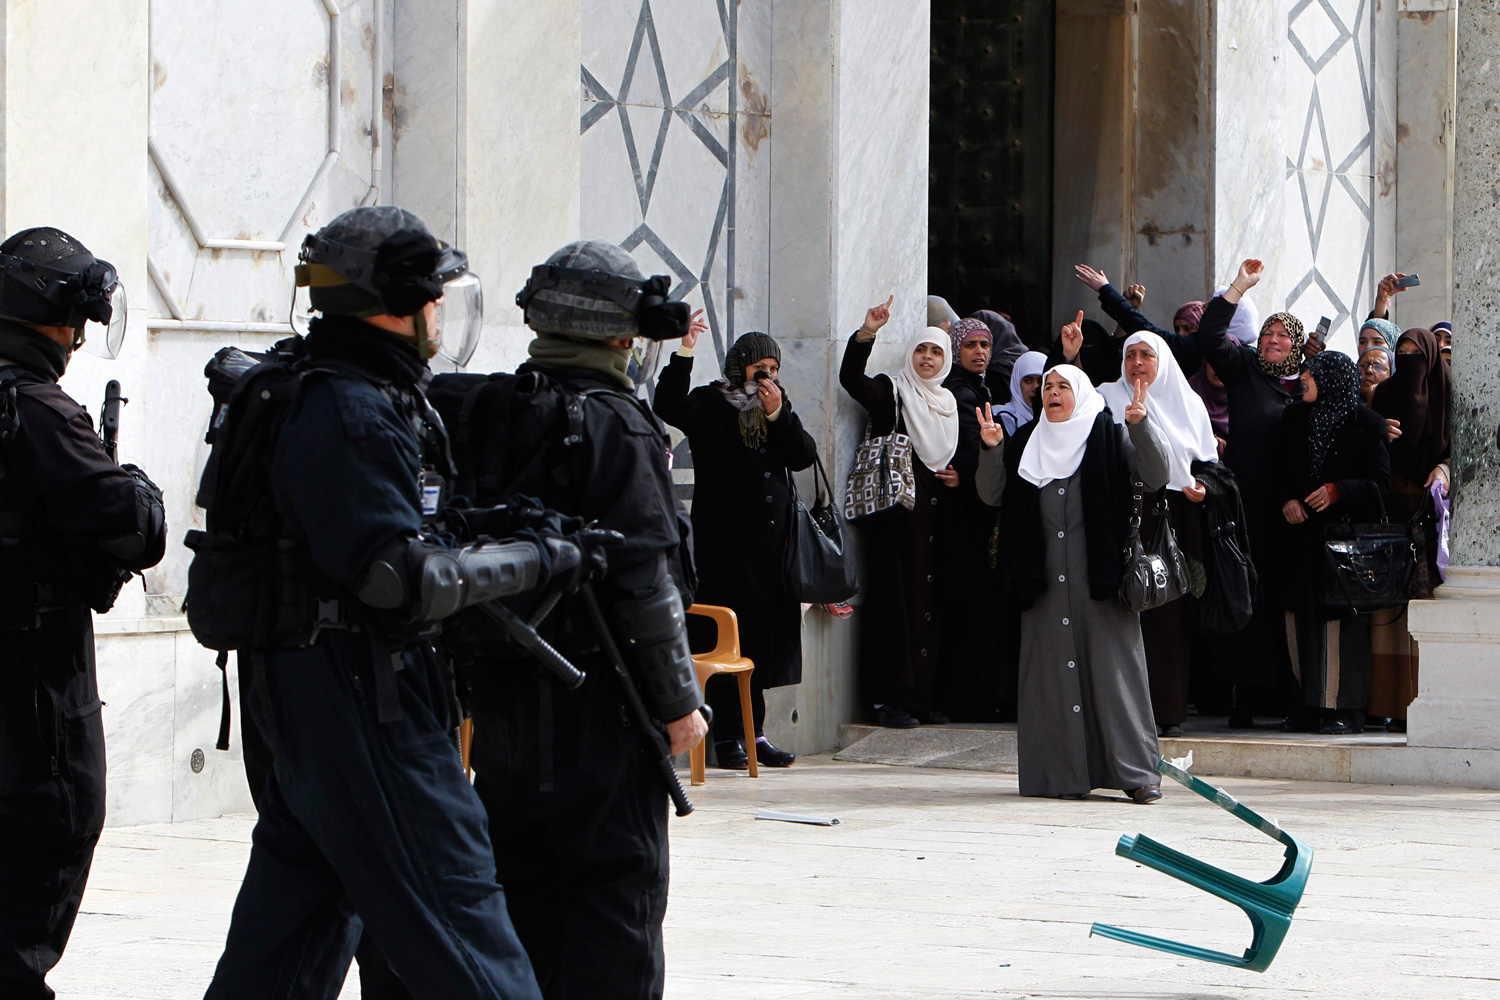 Feb. 24, 2012. Palestinian women gesture as they shout at Israeli policemen during clashes in Jerusalem's Old City.